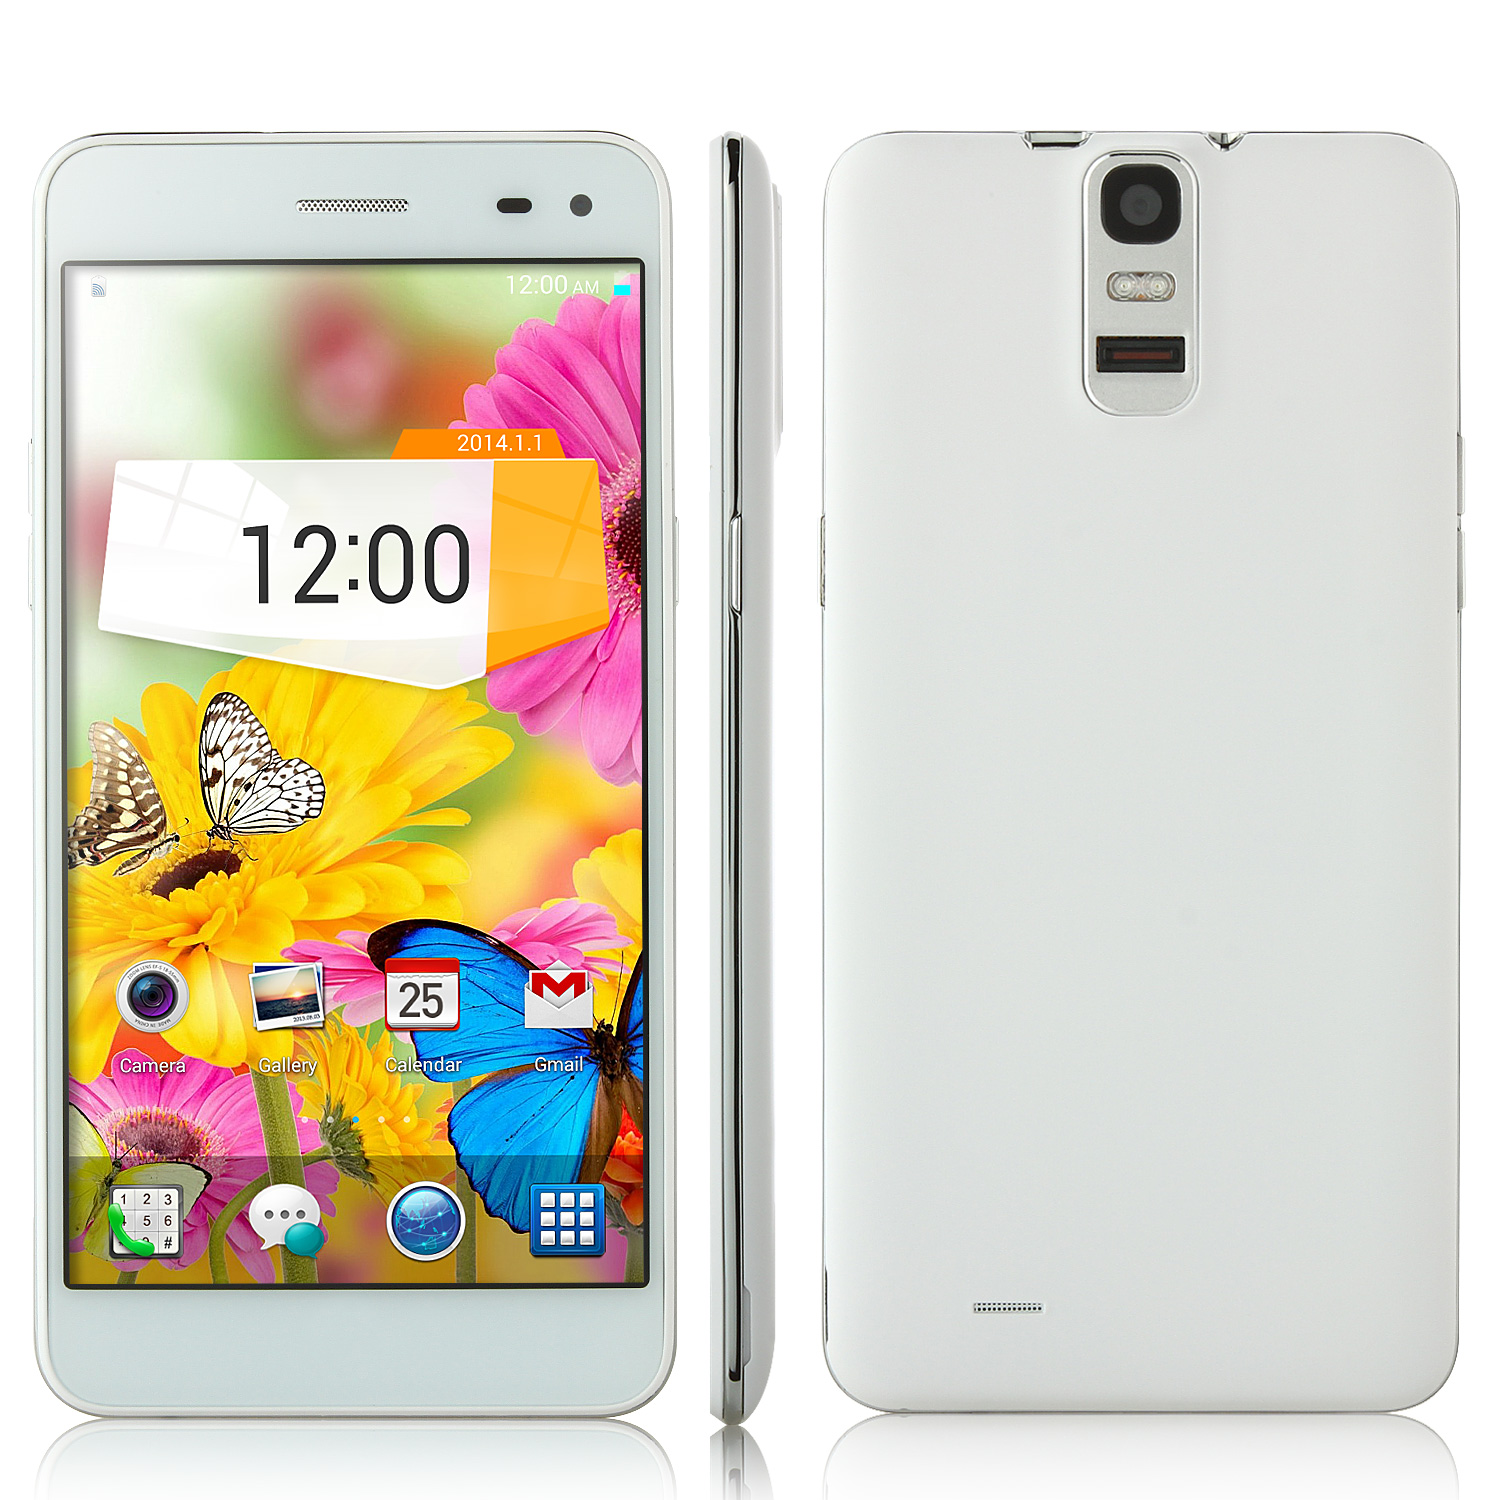 T6S Smartphone Android 4.4 MTK6582 3G NFC Finger Scanner 5.5 Inch HD Screen- White